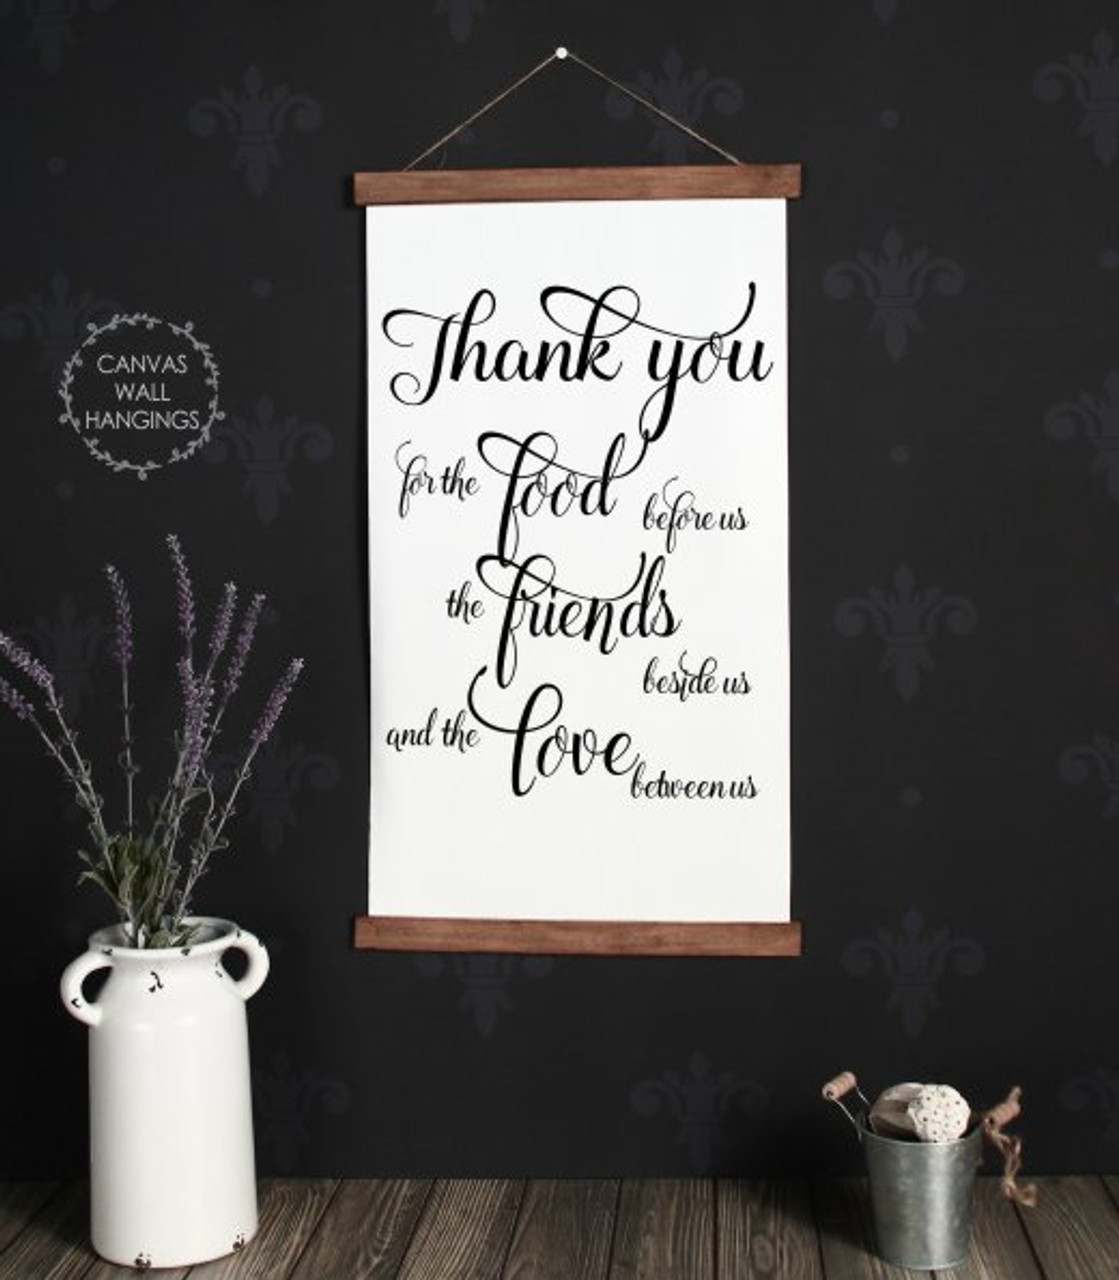 Wood Canvas Wall Hanging Thank You Verse Kitchen Wall Art